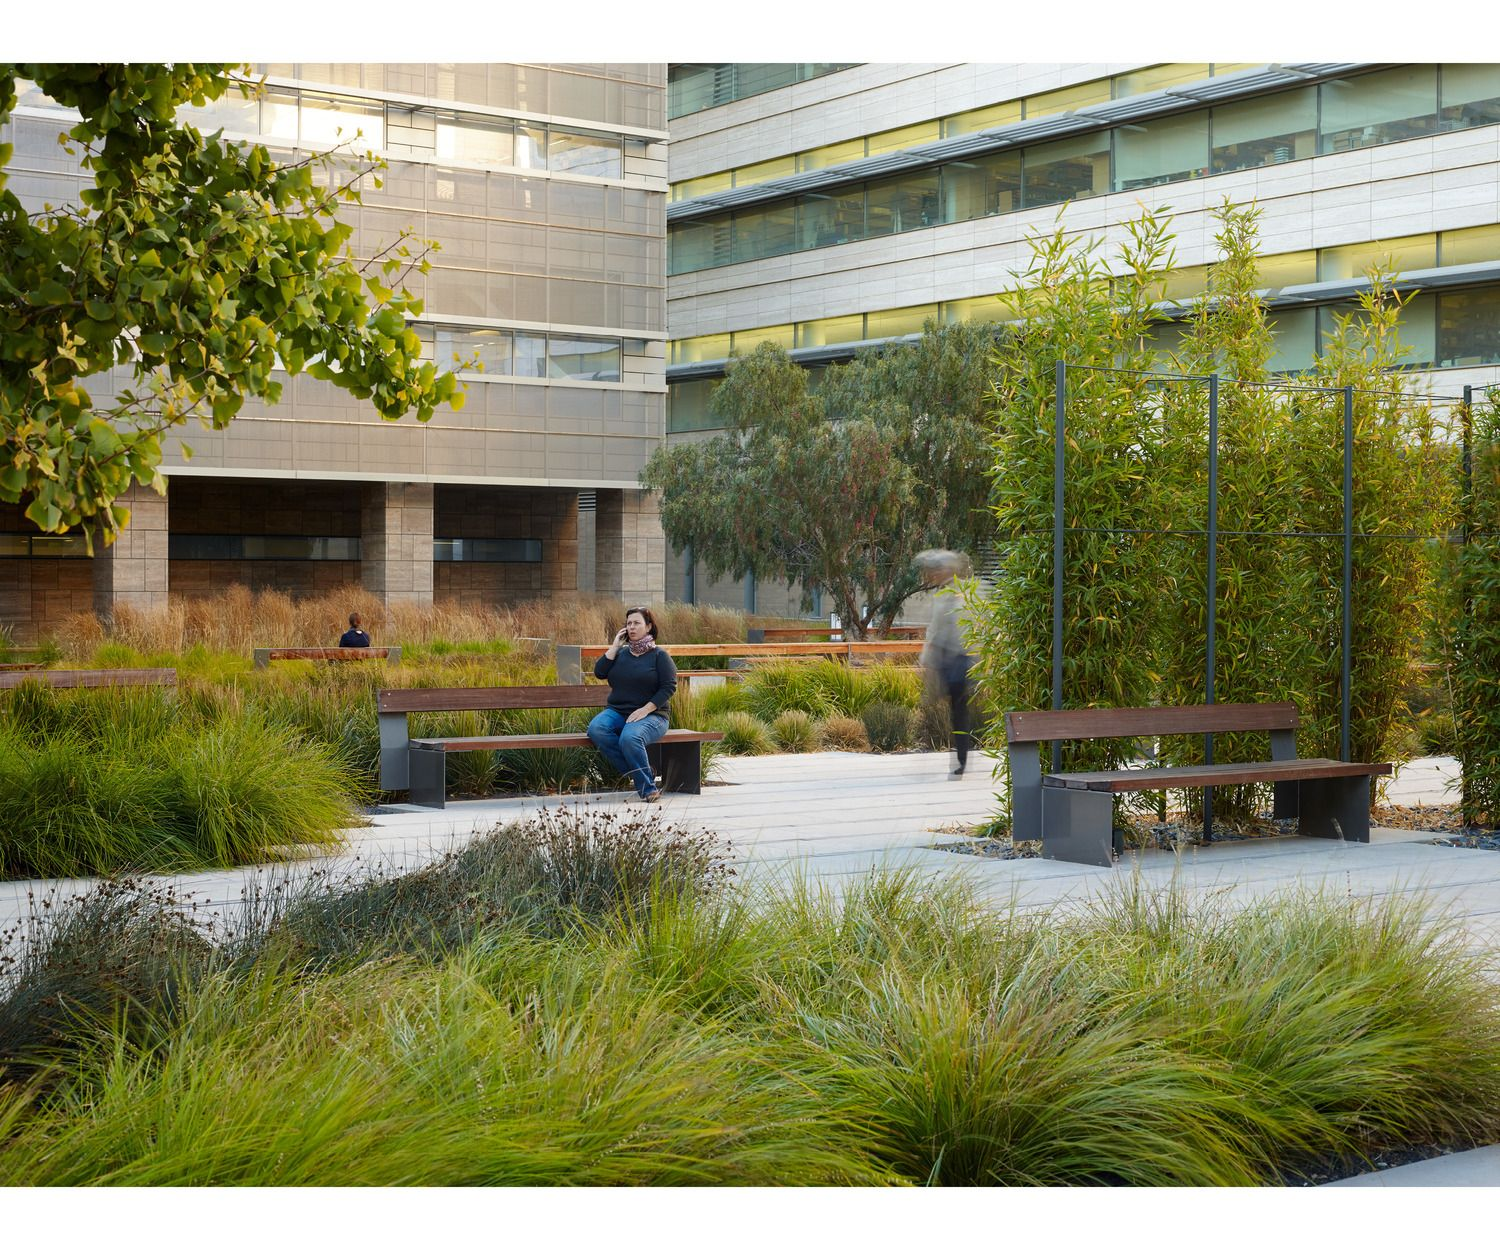 Landscape Architects: Use Grasses And Sedges With A Variety Of Colour, Texture